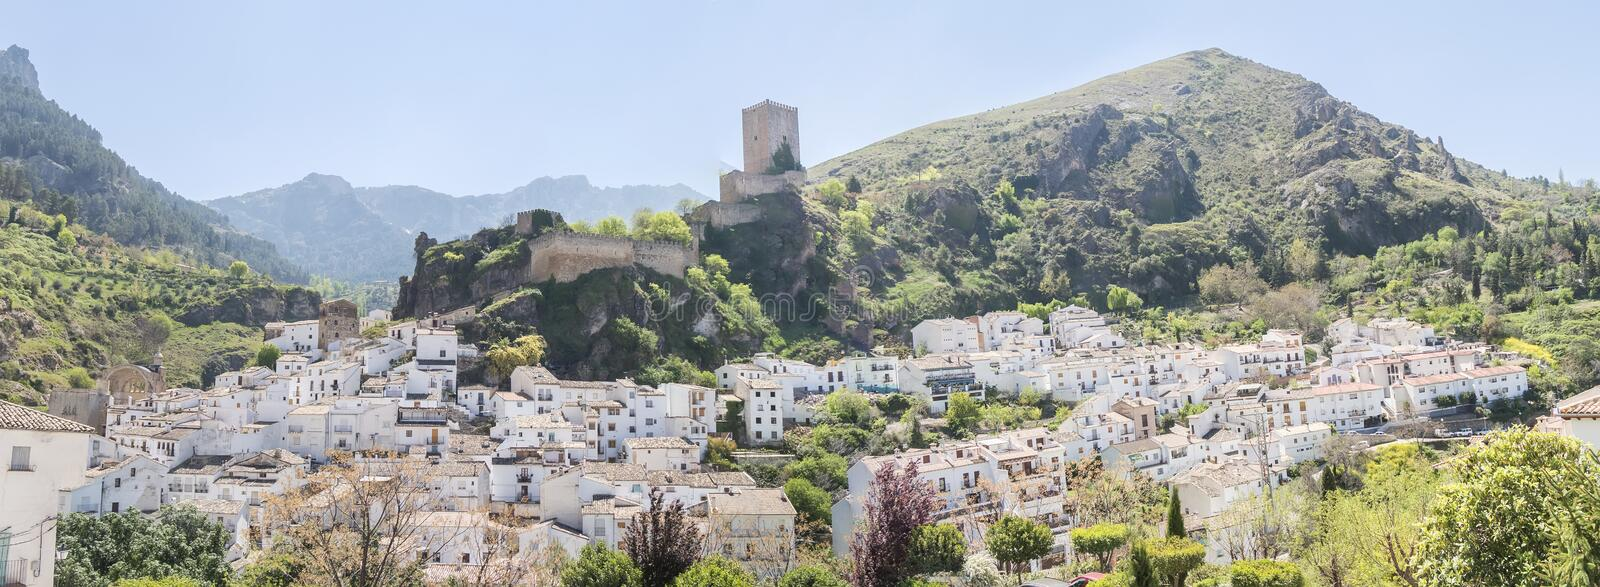 Panoramic view of Cazorla village, in the Sierra de Cazorla, Jaen, Spain stock photography